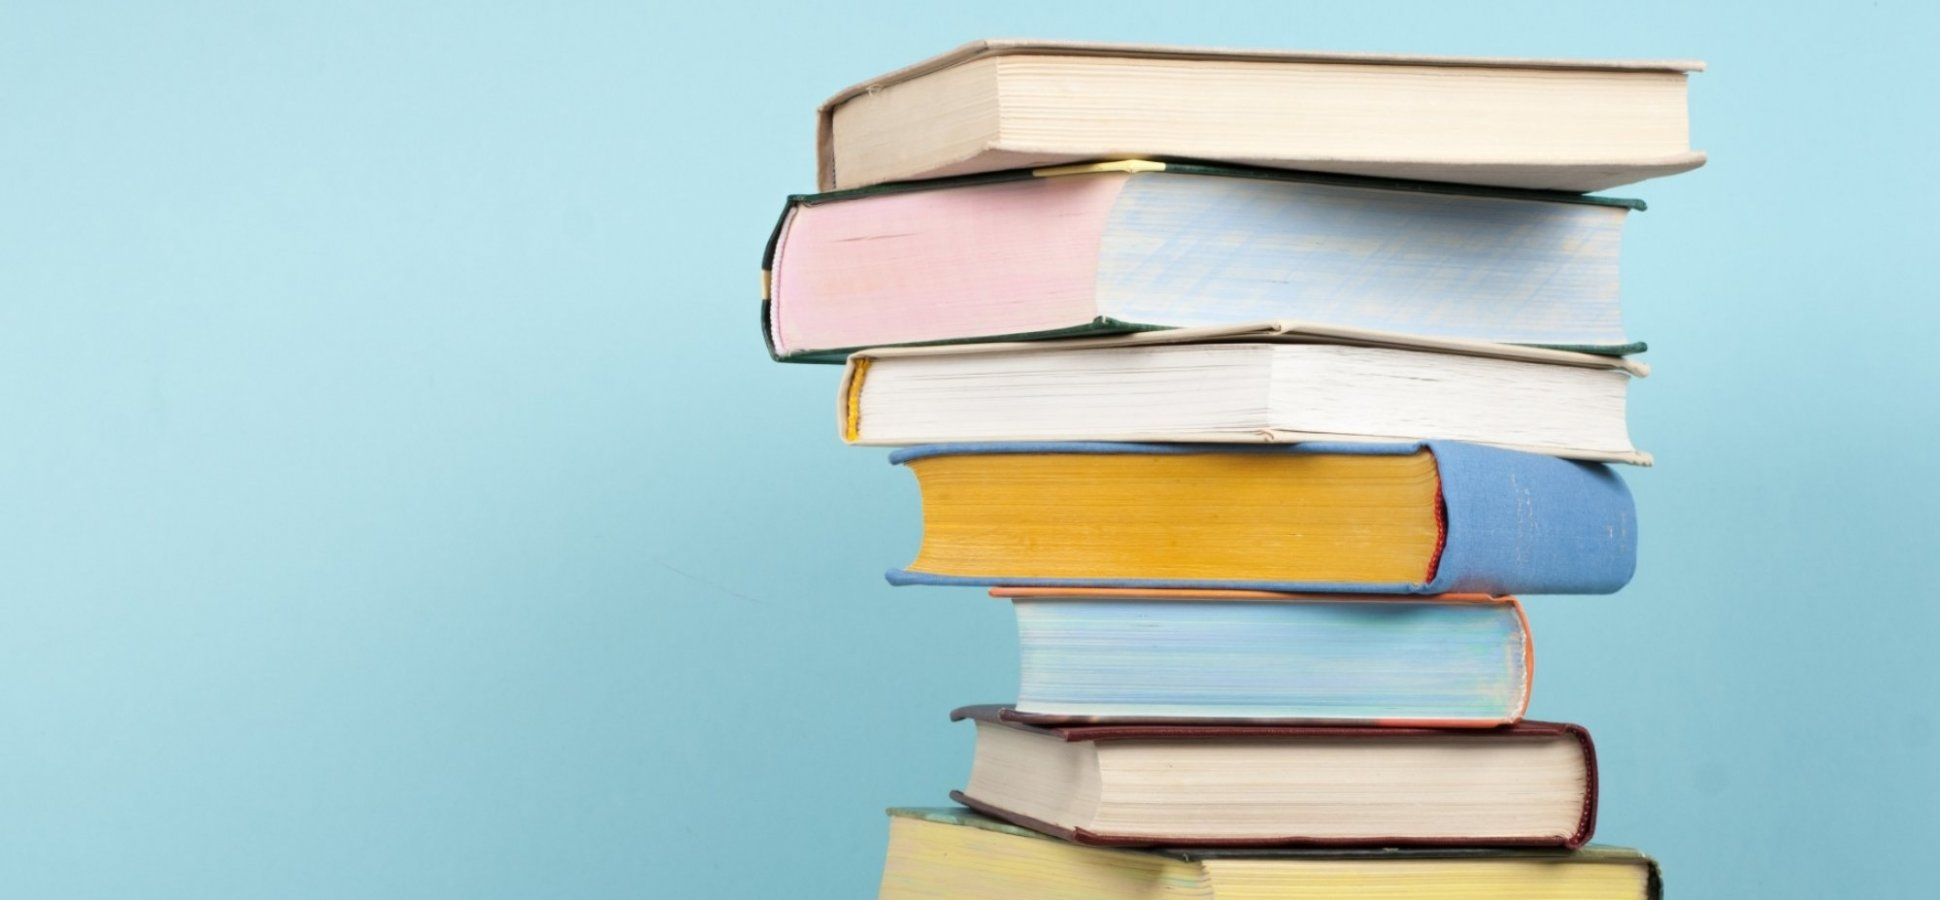 One of the Best Things You Can Do for Your Business Is Read These 3 Books This Summer